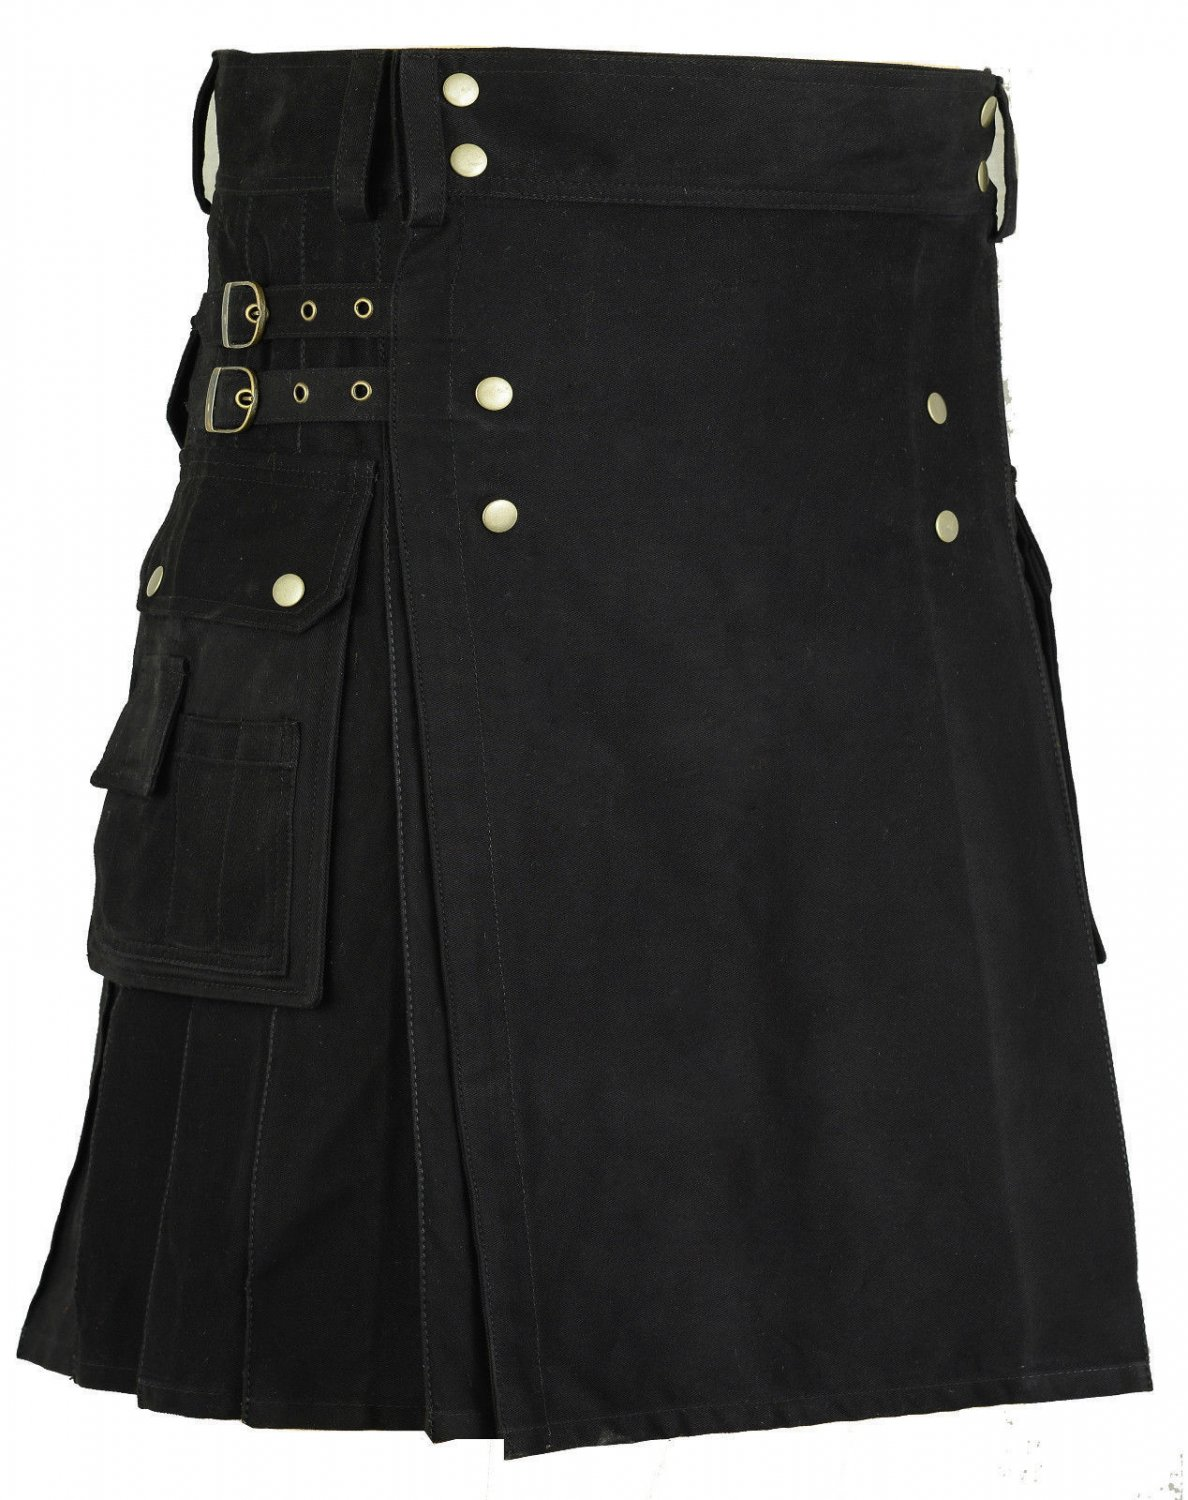 Size 46 New Scottish Cotton Kilt Deluxe Goth Outdoor Utility Kilts Highland Skirt